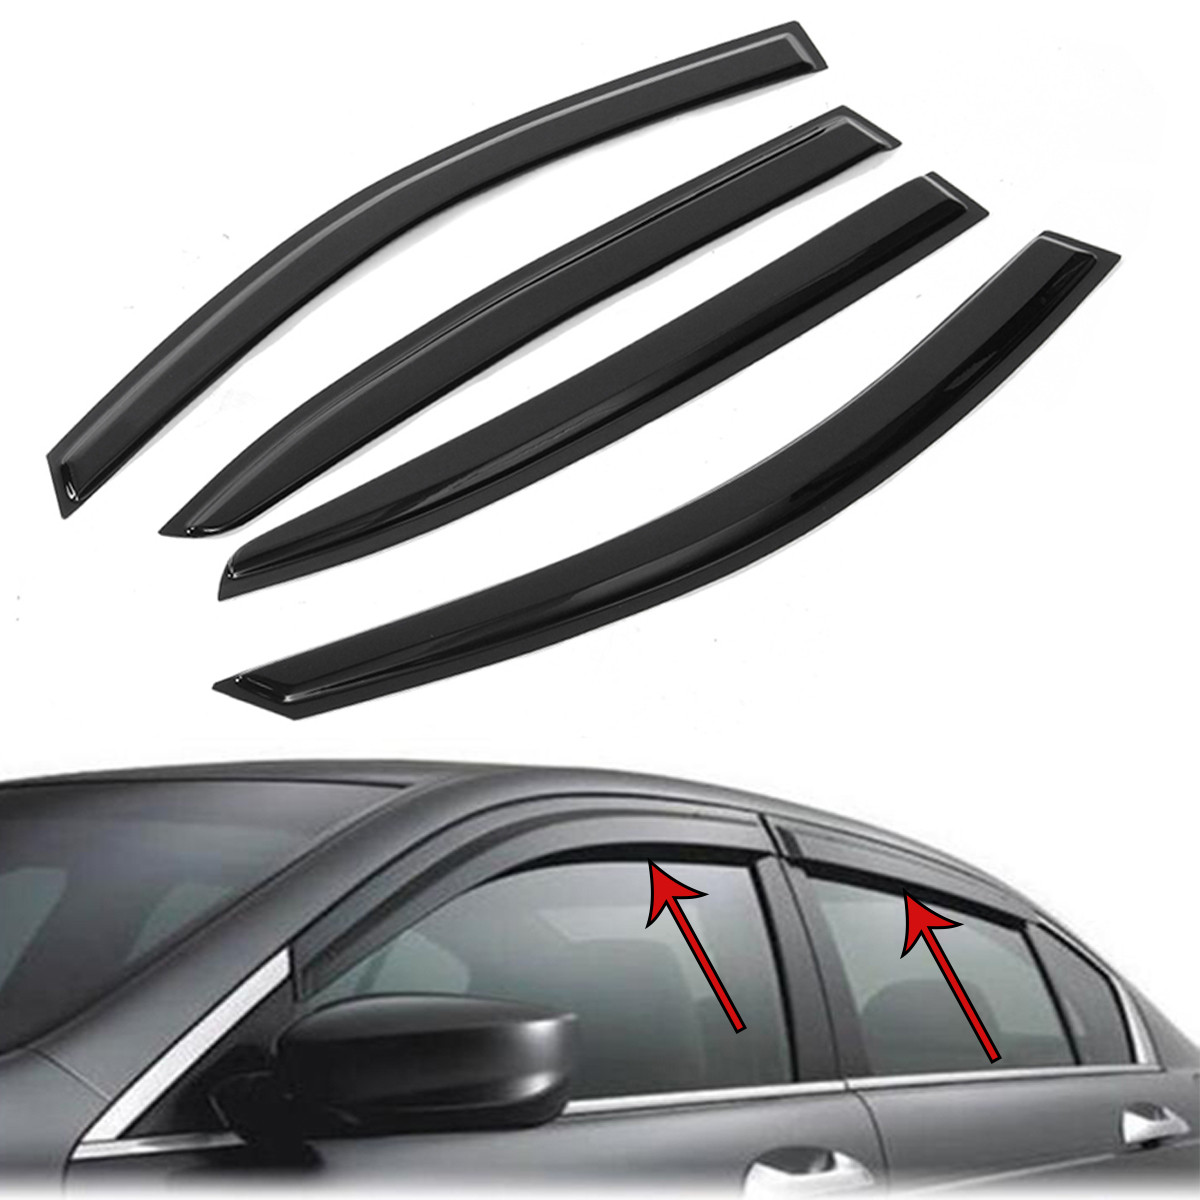 Buy Window Vent Visors Shield Rain Guards Sun Deflector For HONDA ACCORD 4DR 08-12